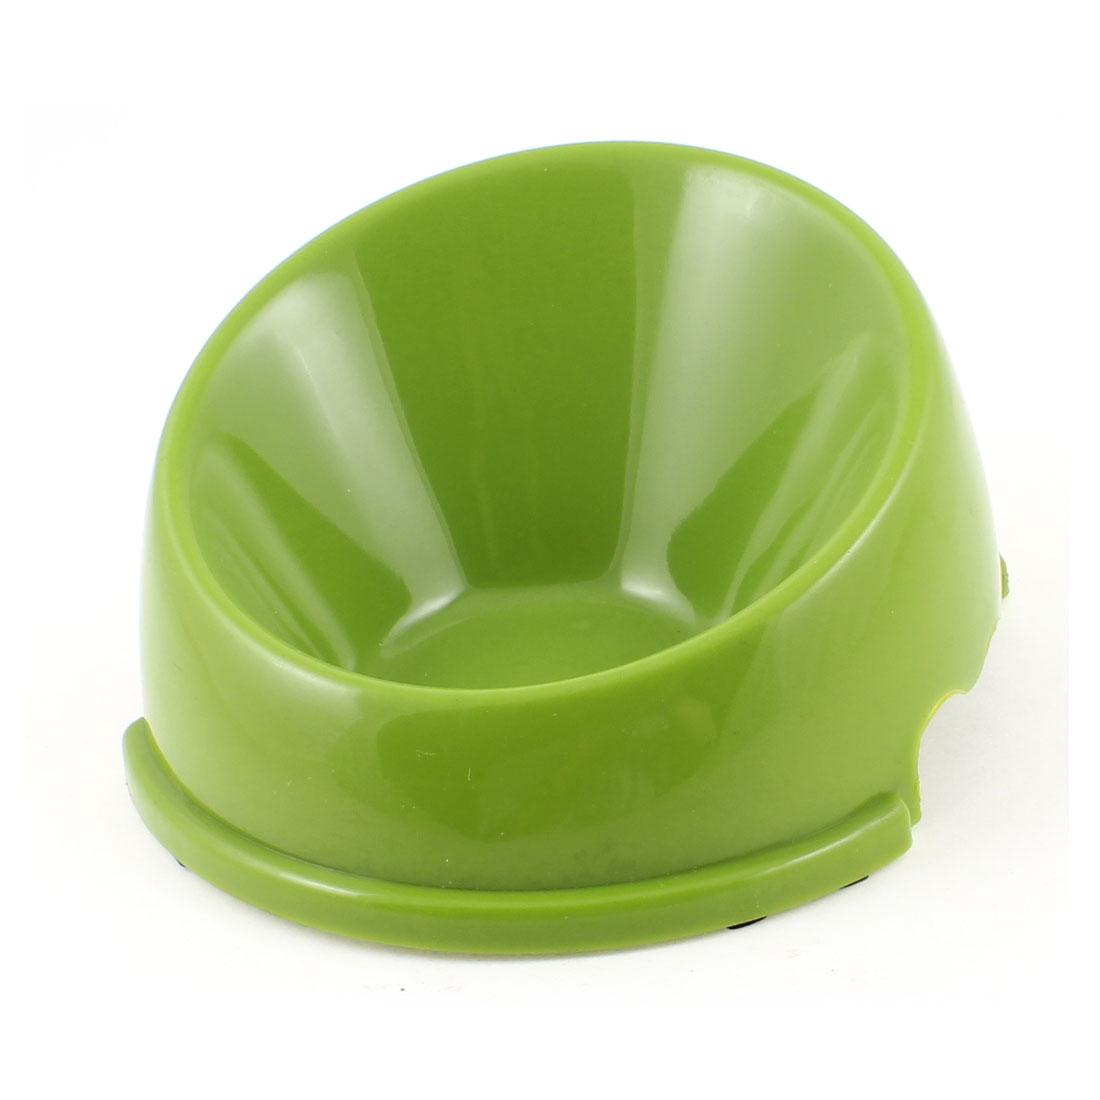 "Green Plastic Dog Cat Pet Slow Feed Bowl Feeder Dish 5.3"" Diameter"